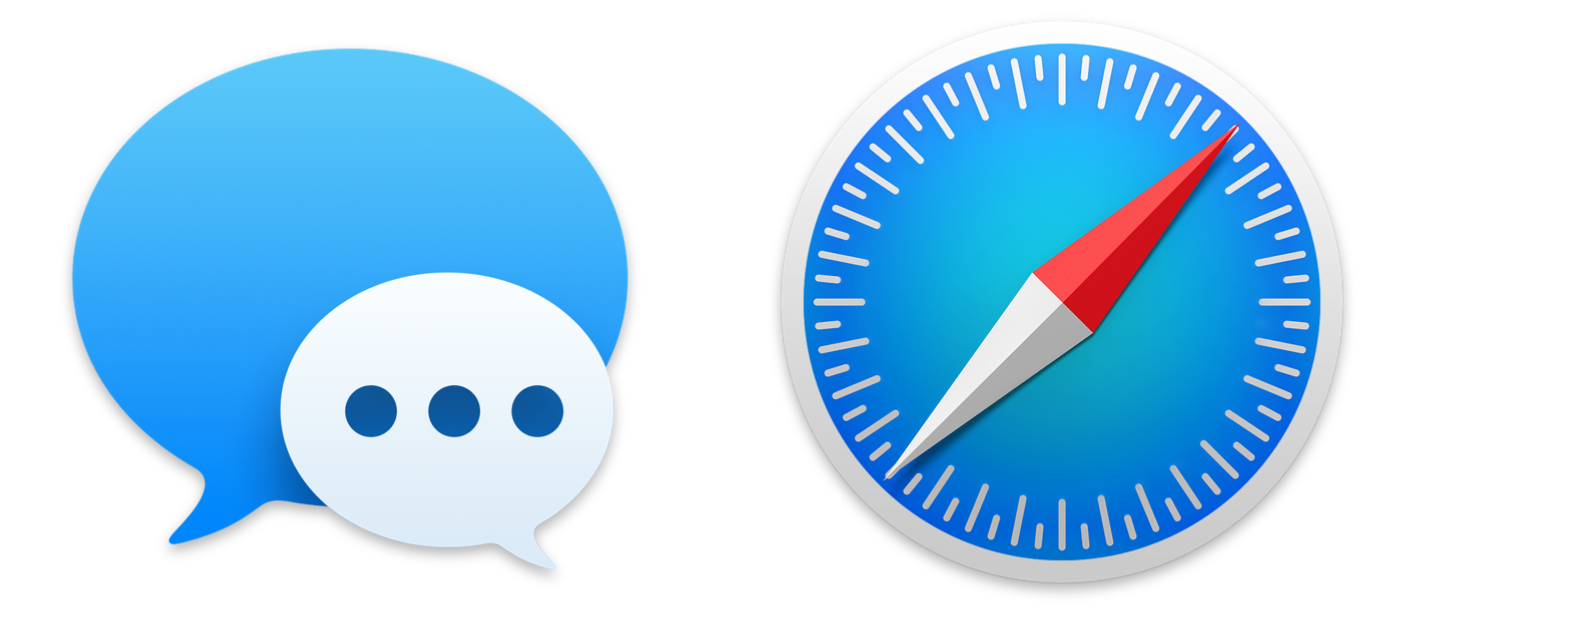 The new Messages and Safari icons are pretty great, too